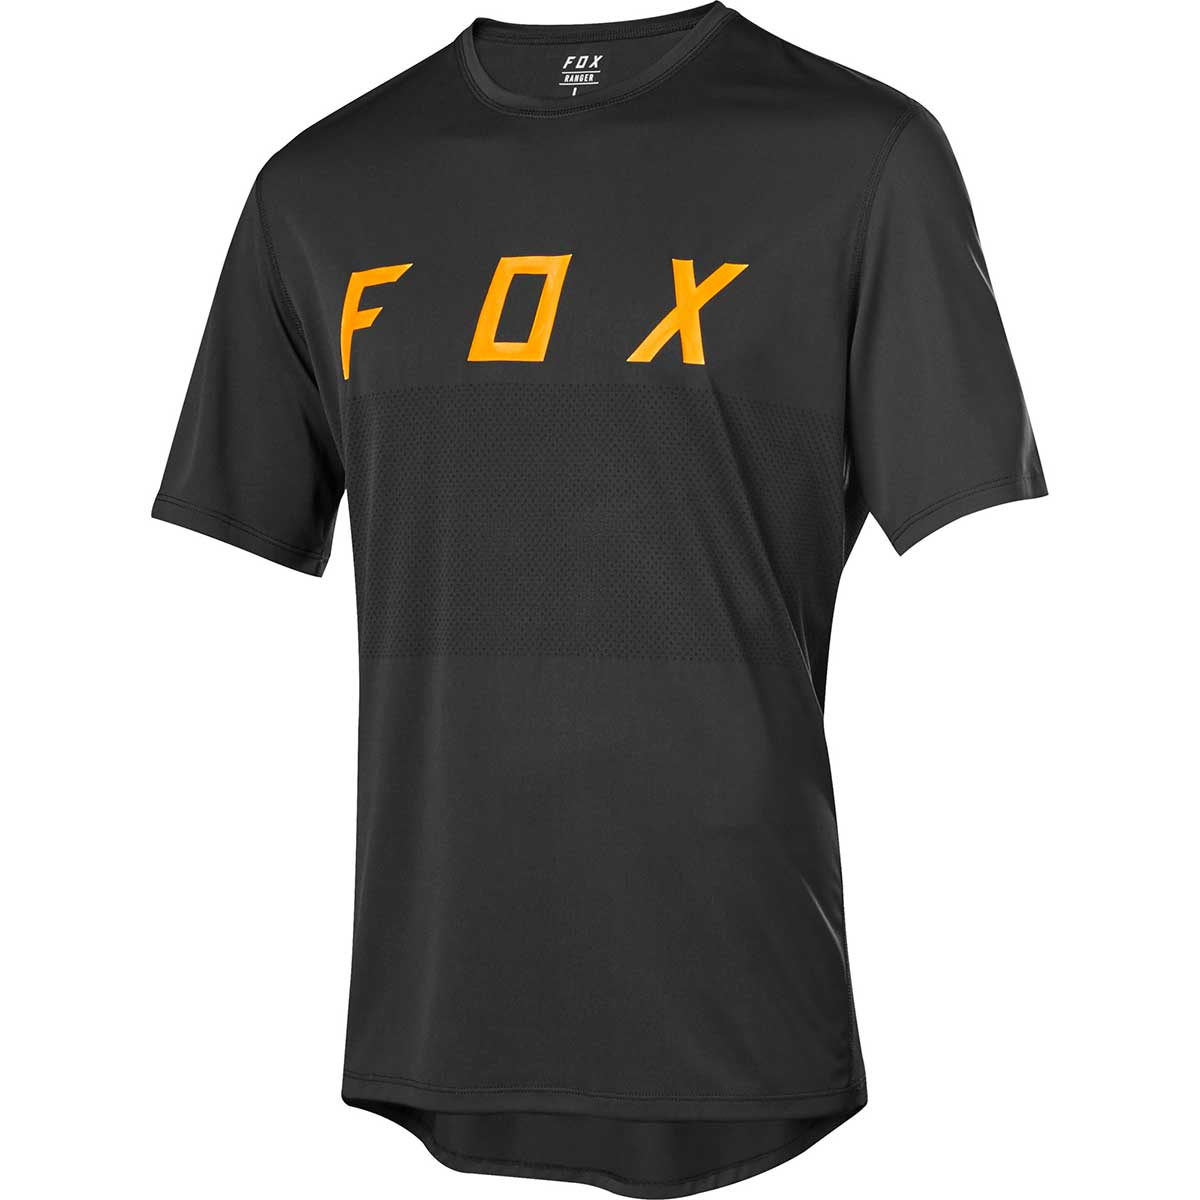 Fox men's Ranger Fox bike jersey in Black